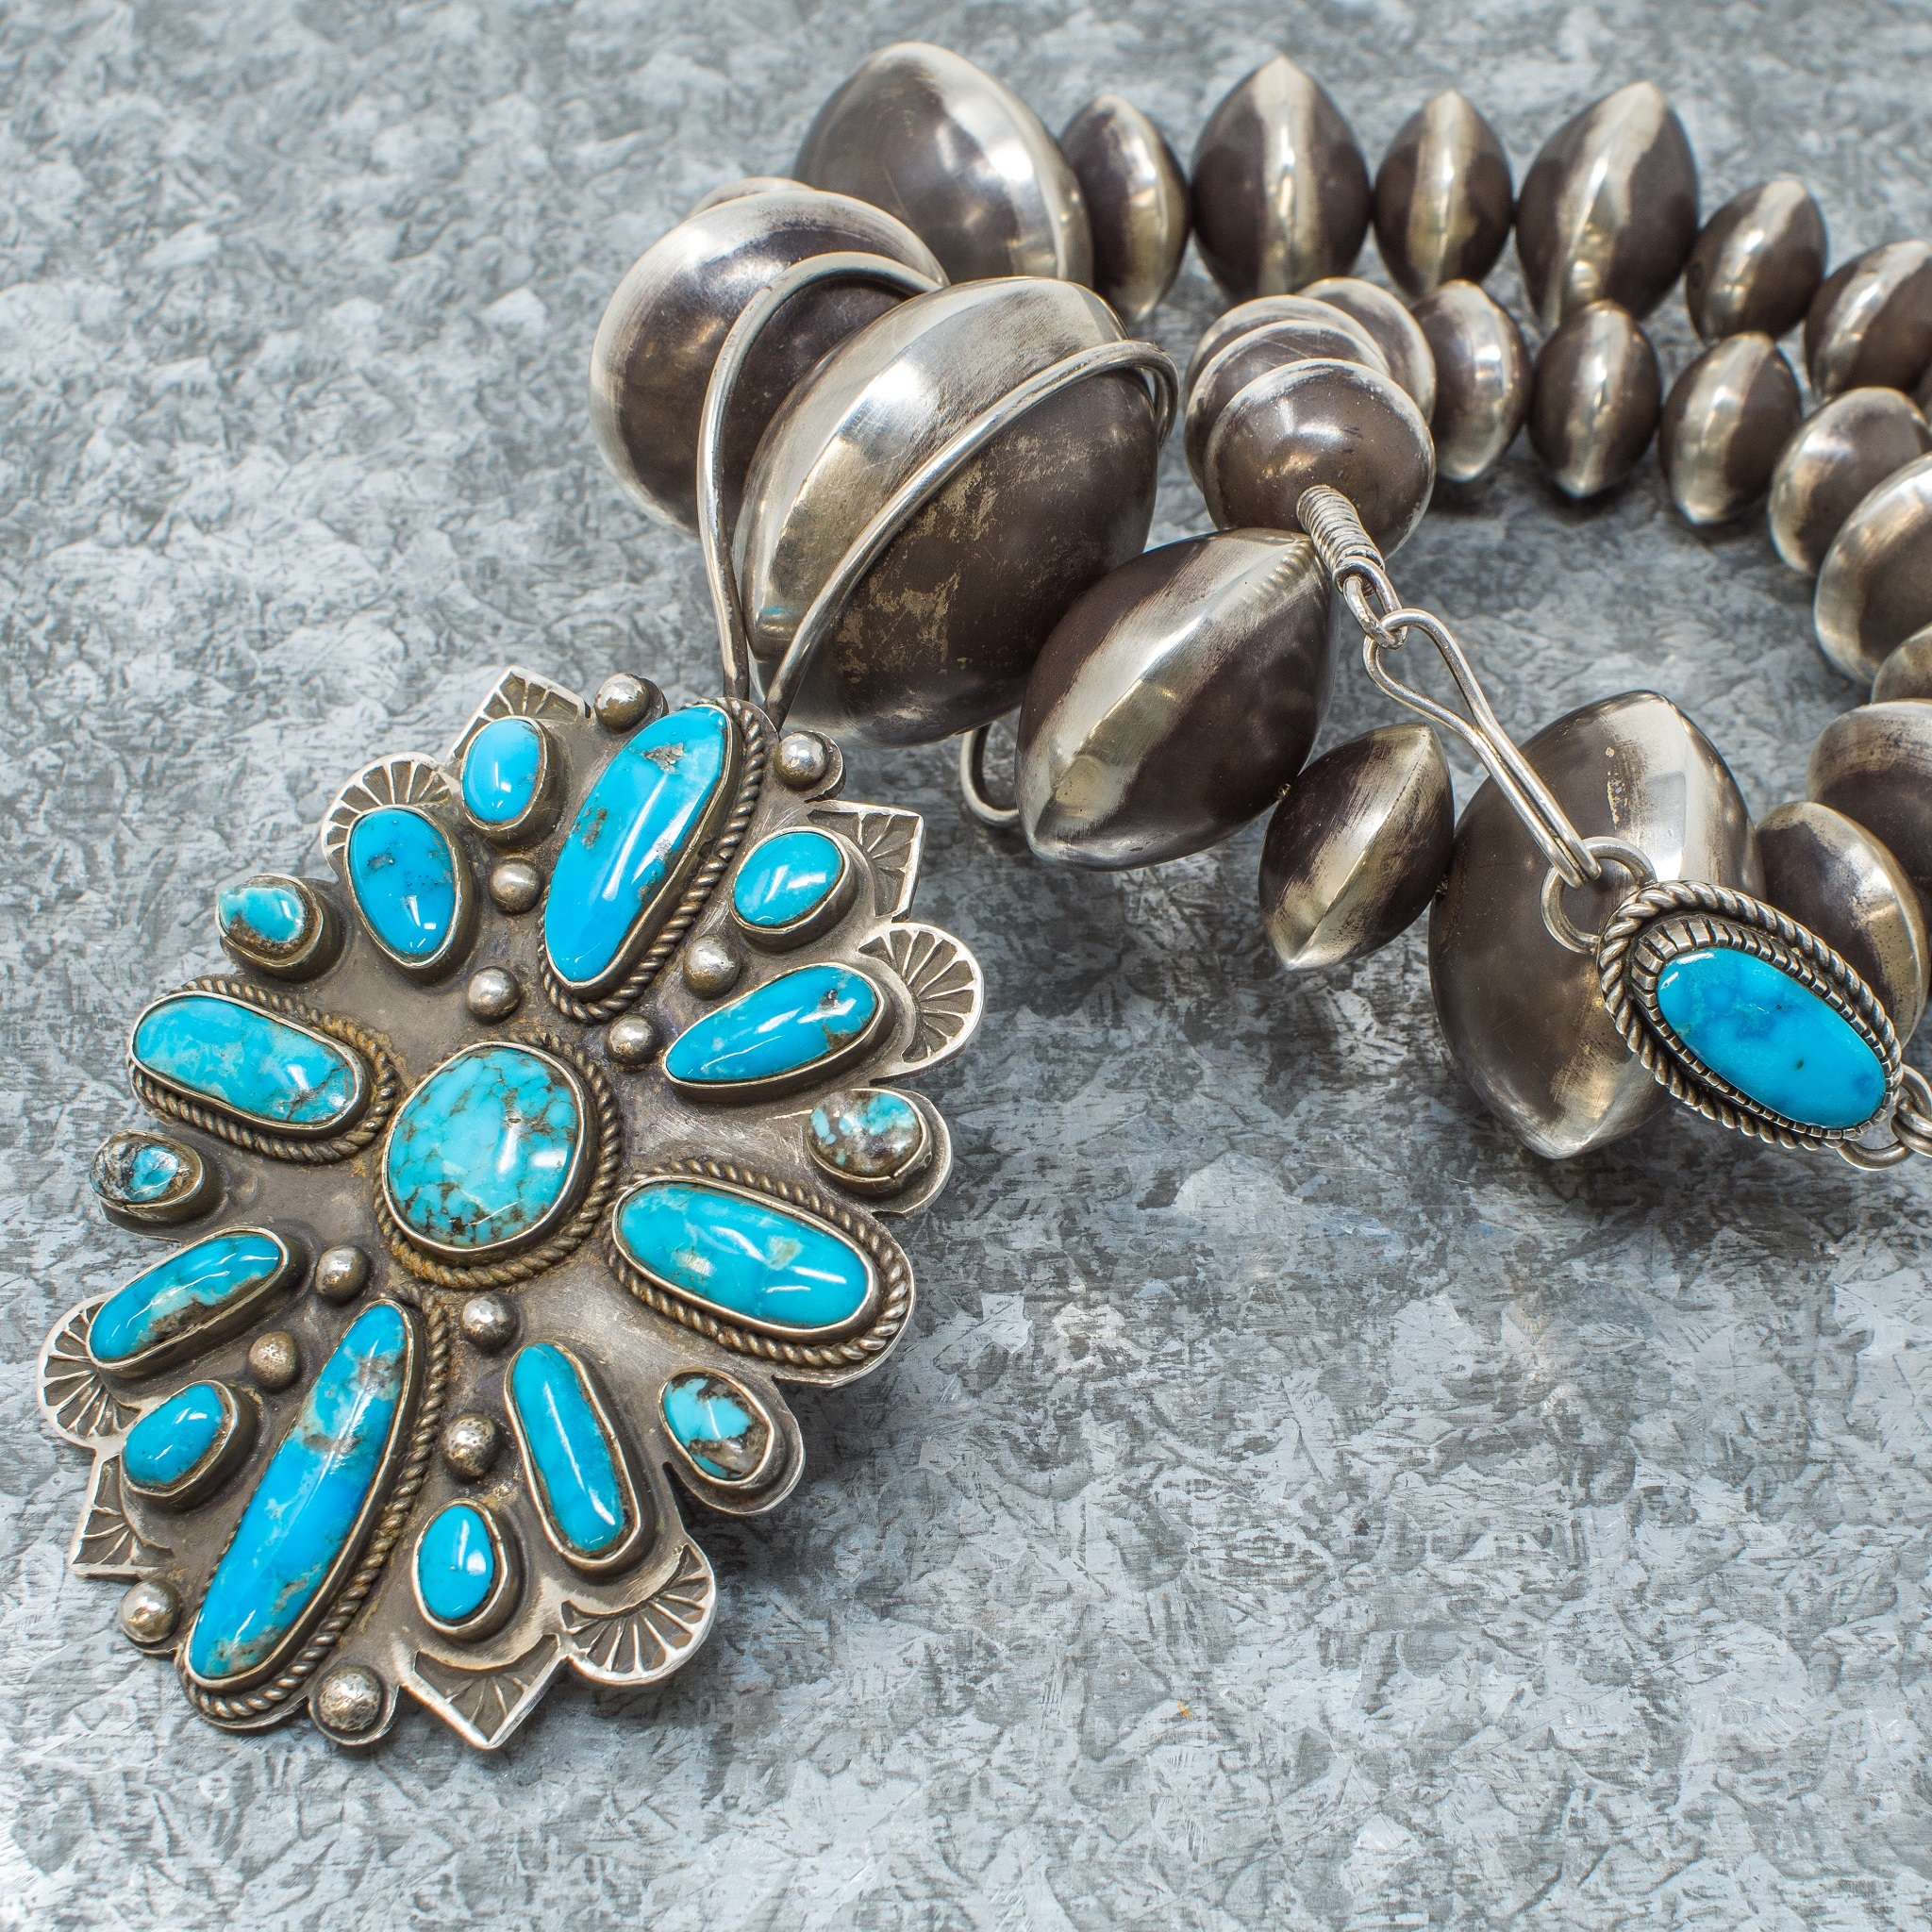 Navajo Pearls & Morenci Turquoise Pendant by Tommy Jackson JE190028